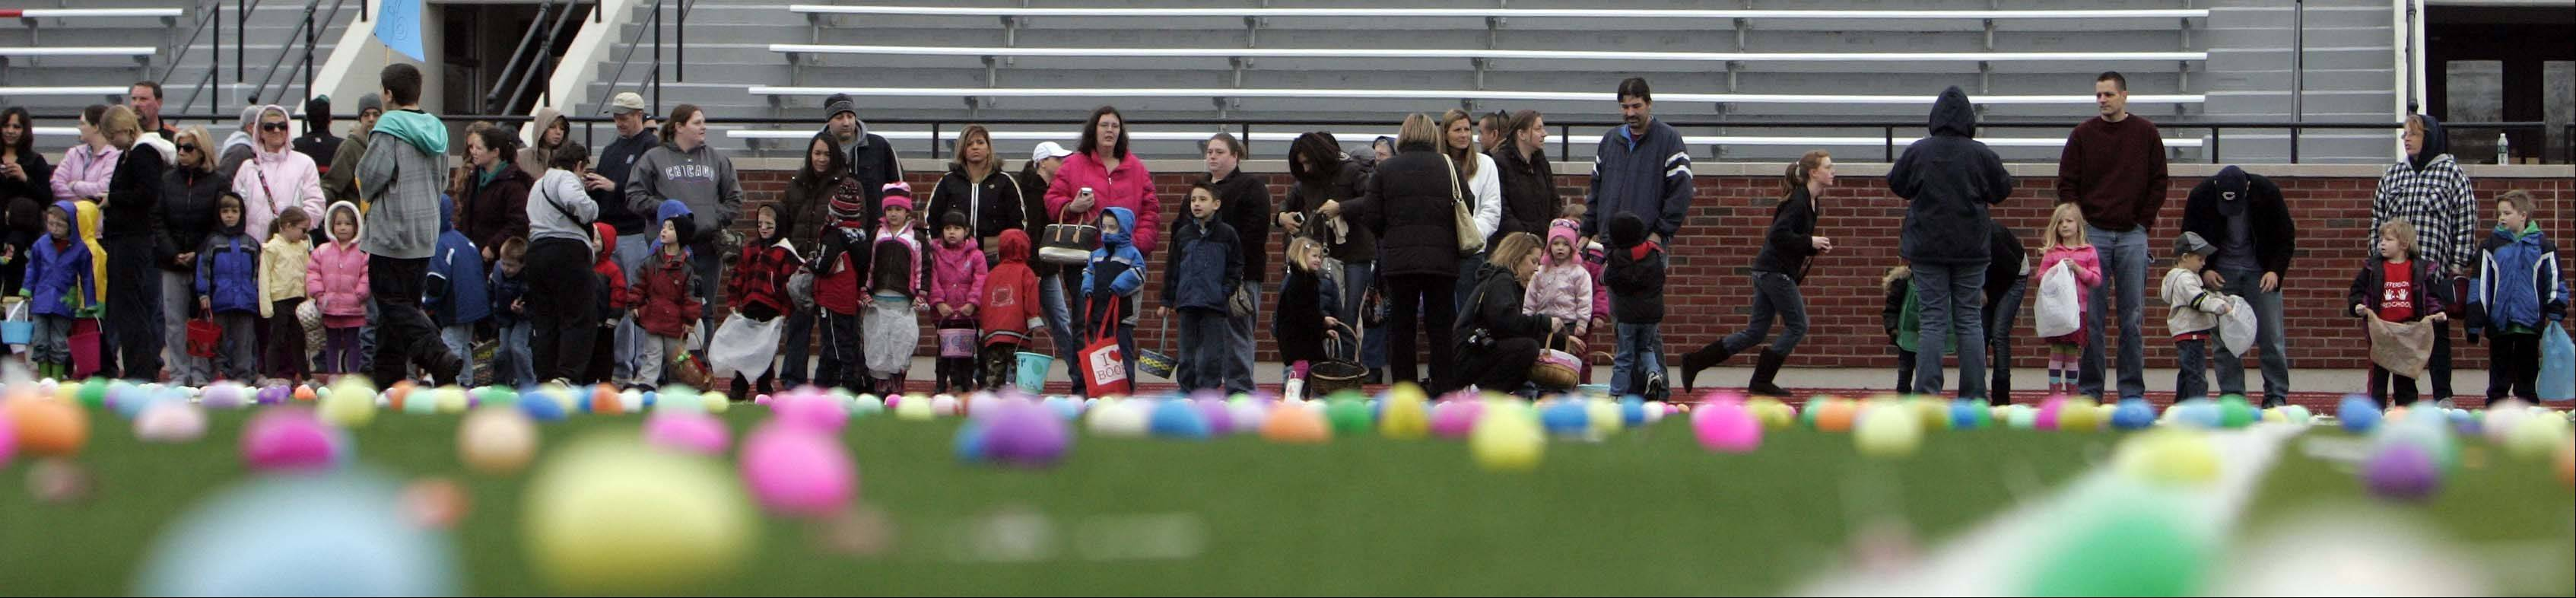 Participants line up as more than 6,000 plastics eggs greeted children during Mooseheart's Easter egg hunt last year.